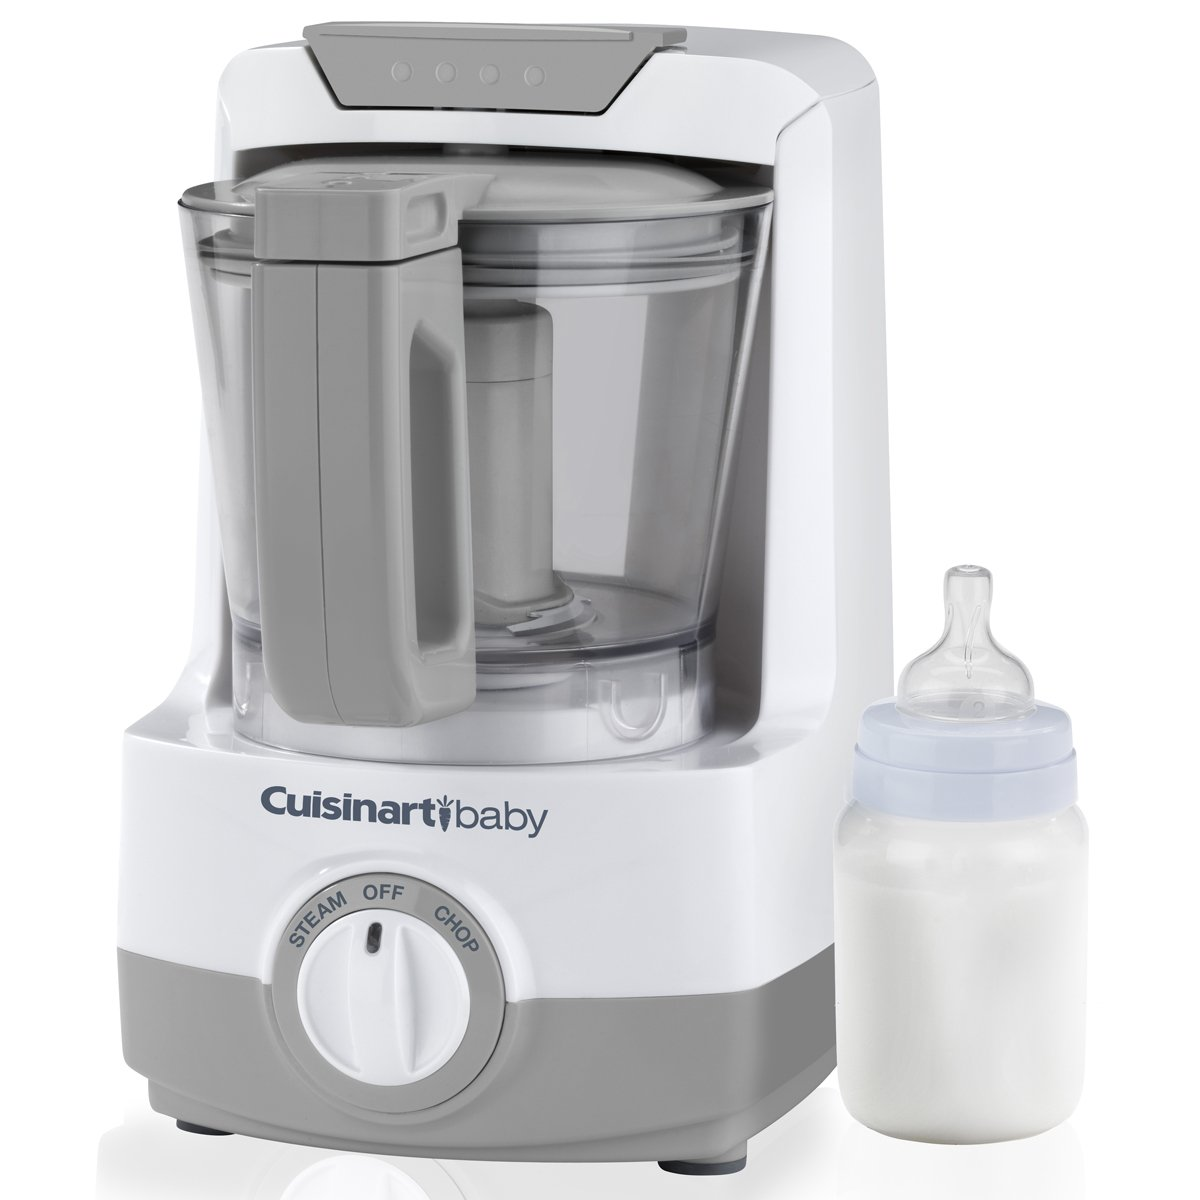 Top 6 Best Food Processors for Baby Food Reviews in 2020 3